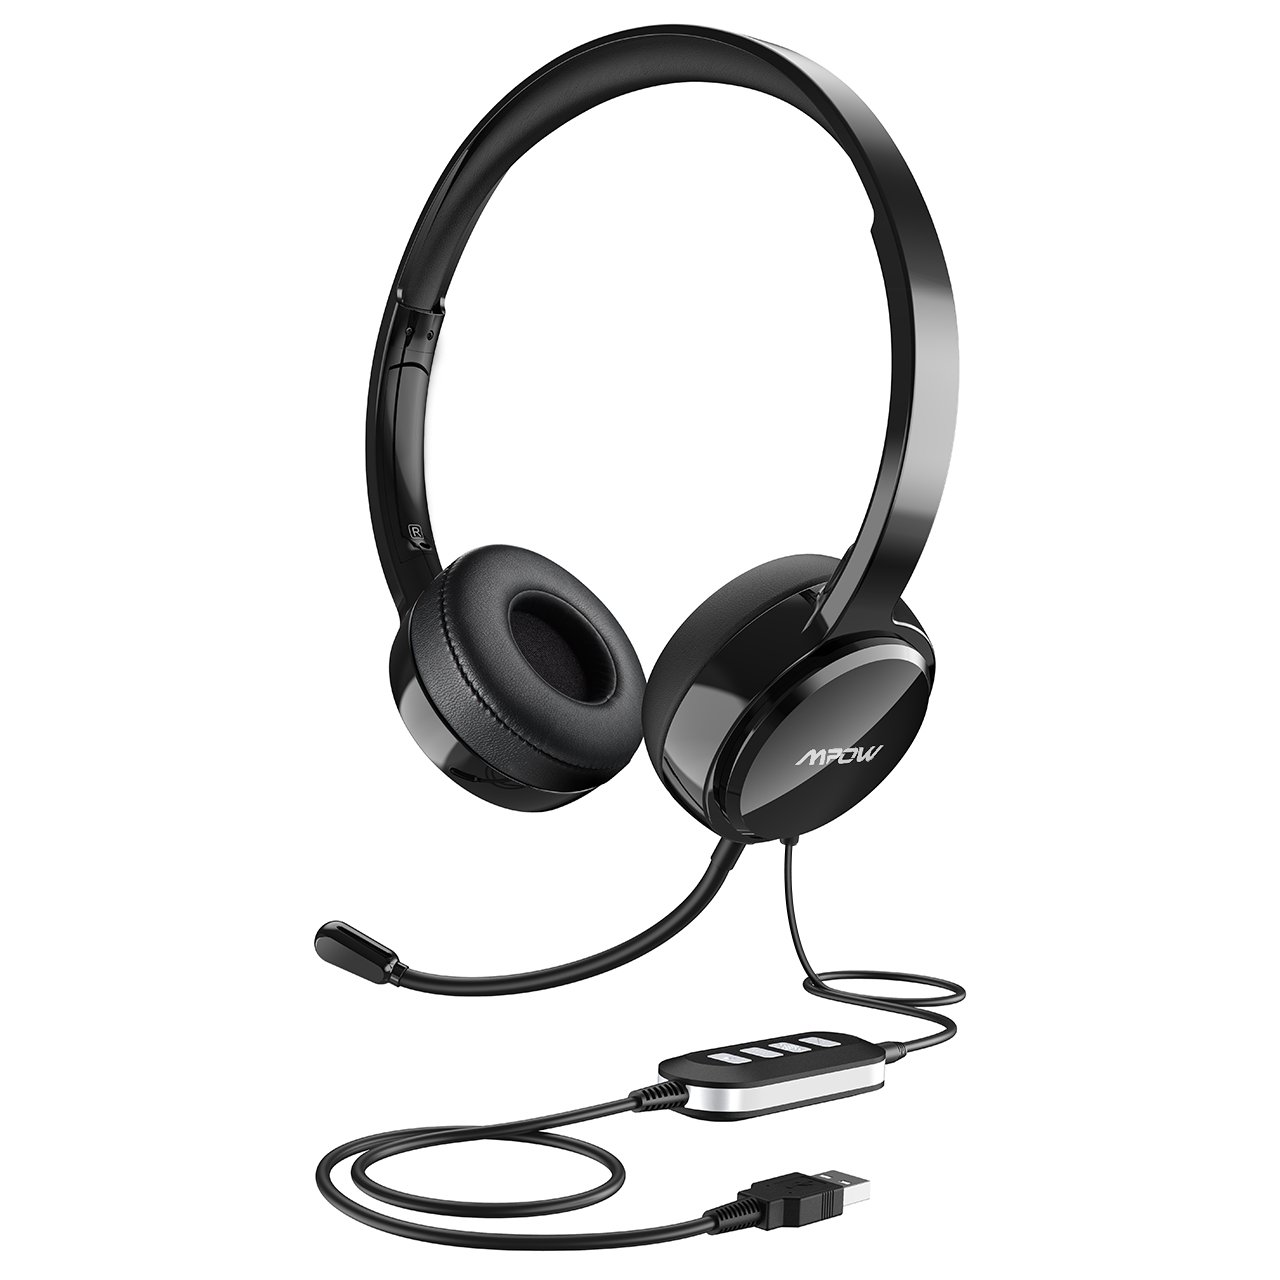 Mpow USB Headset (All-Platform Edition) with 3.5mm Jack, Stereo Computer Headset with Microphone Noise-Canceling, Skype Headphones w/Comfort-fit Earpad, Inline Volume Control for PC/Laptop/Cell Phone by Mpow